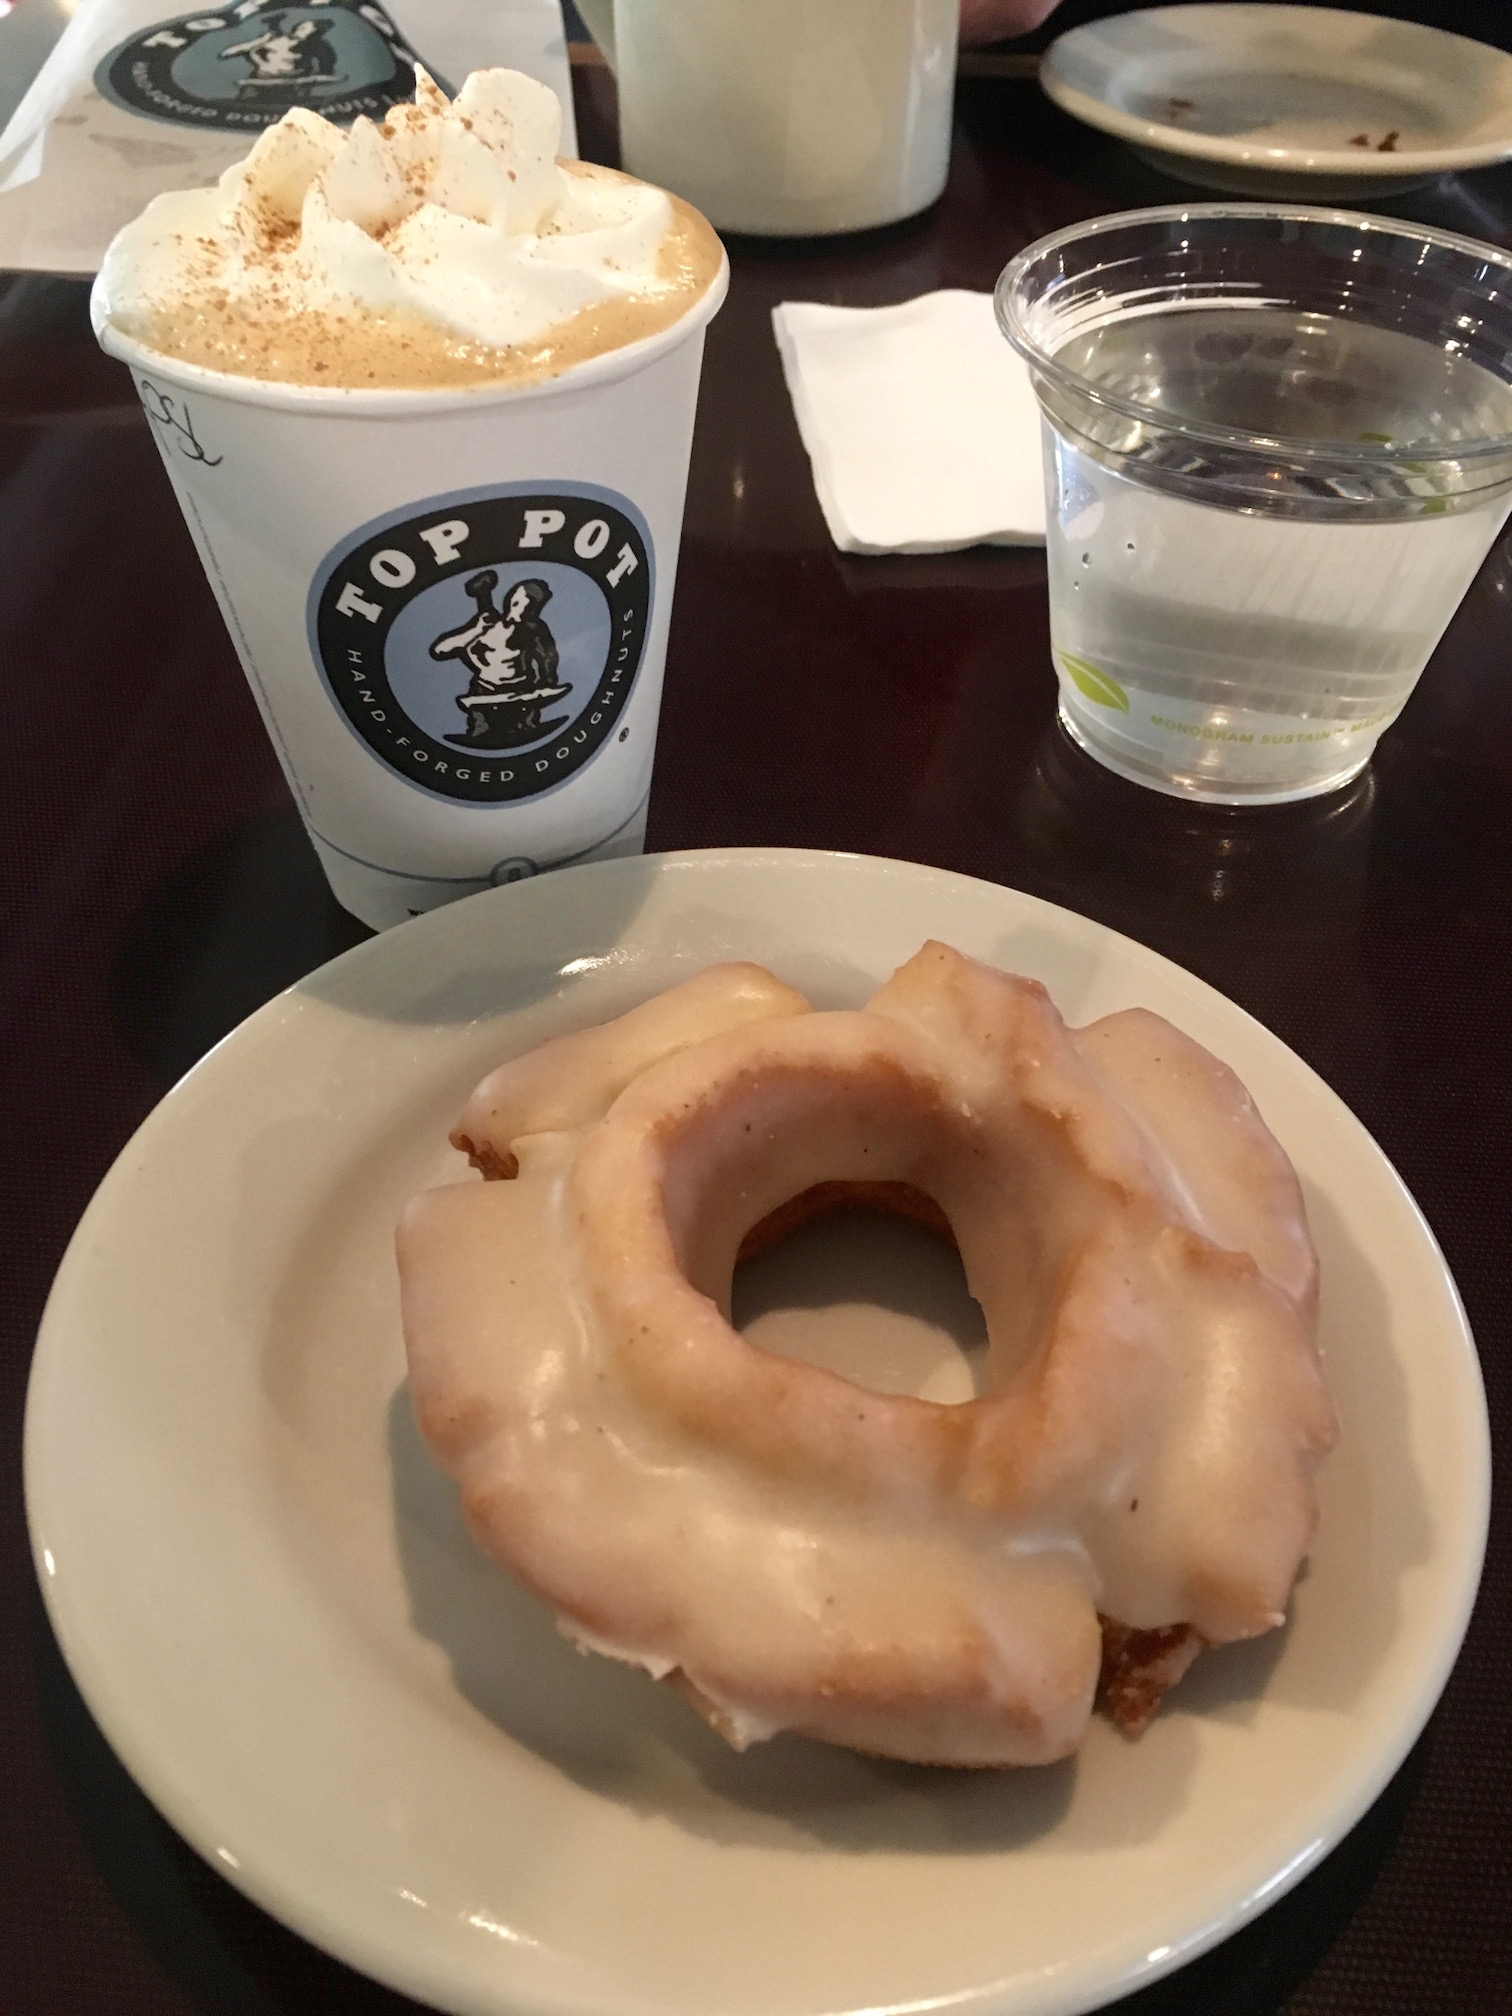 Pumpkin spice latte and a glazed pumpkin old-fashioned doughnut at Top Pot